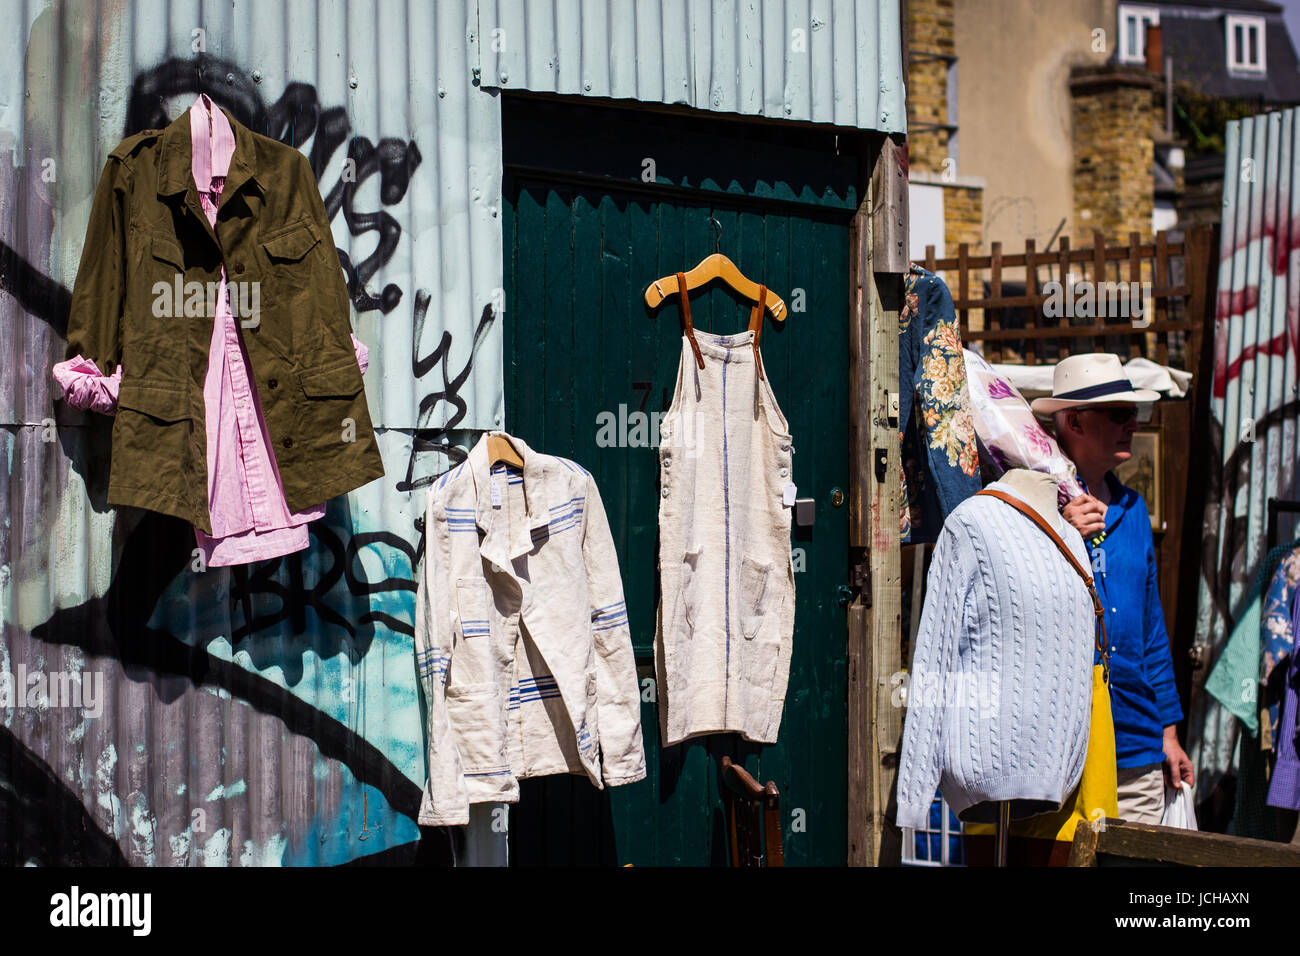 Vintage and secondhand clothes and objects jostle for space athe Columbia Road Flower Market, London Stock Photo